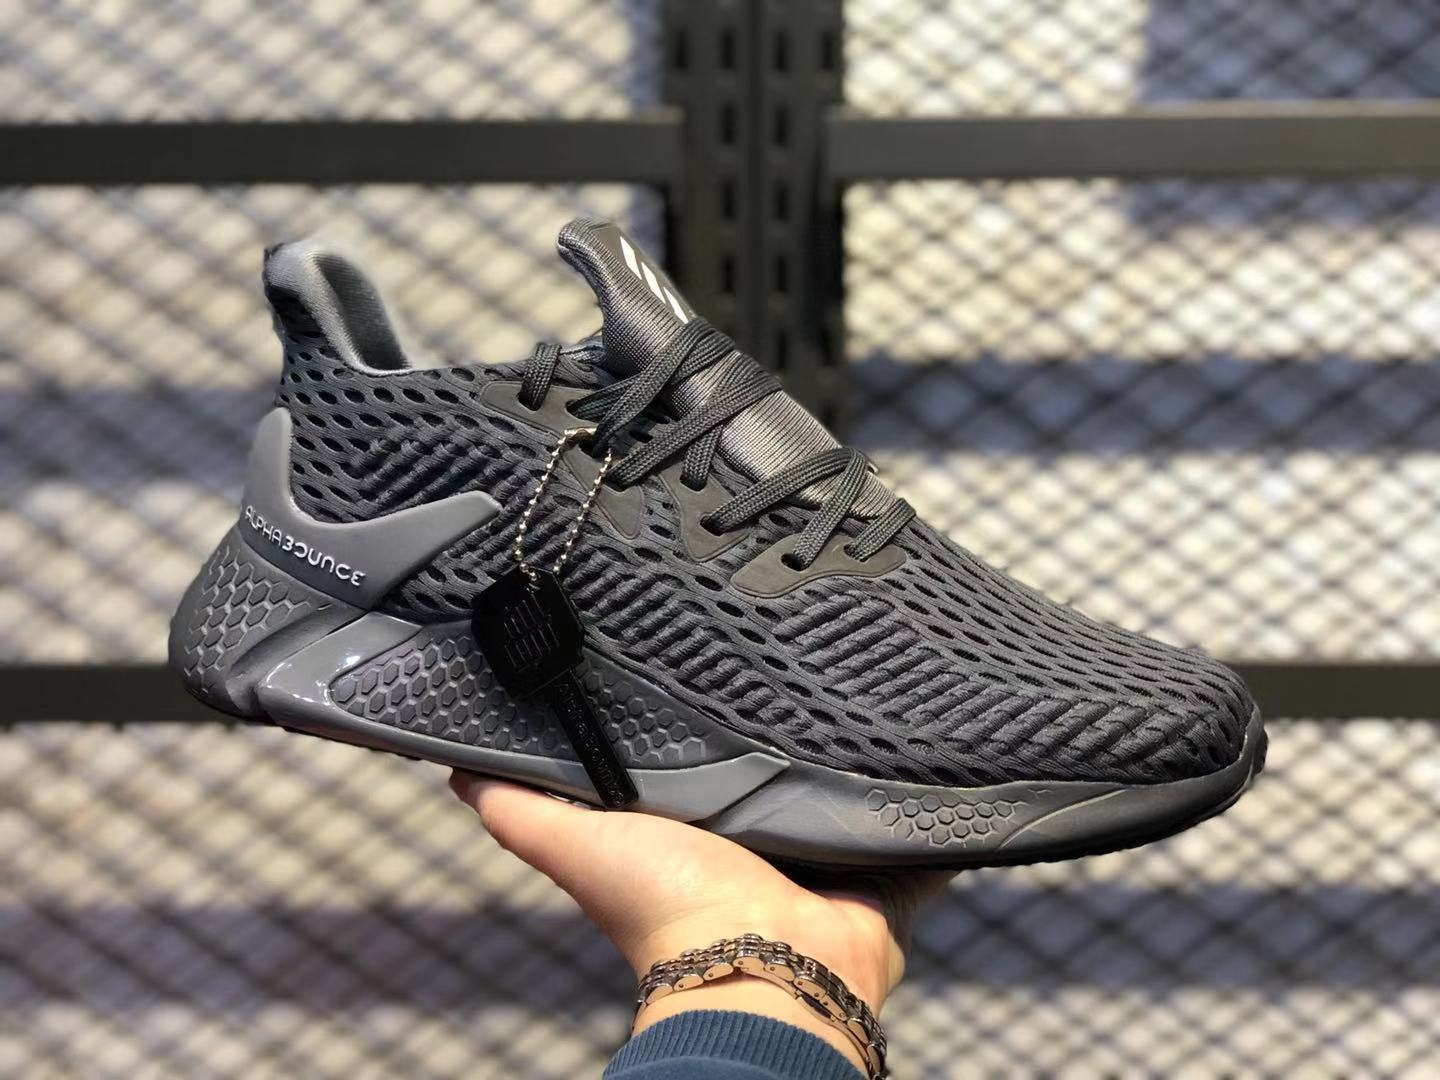 Adidas AlphaBounce Beyond Core Black/Carbon CG5592 Athletic Sneakers On Sale